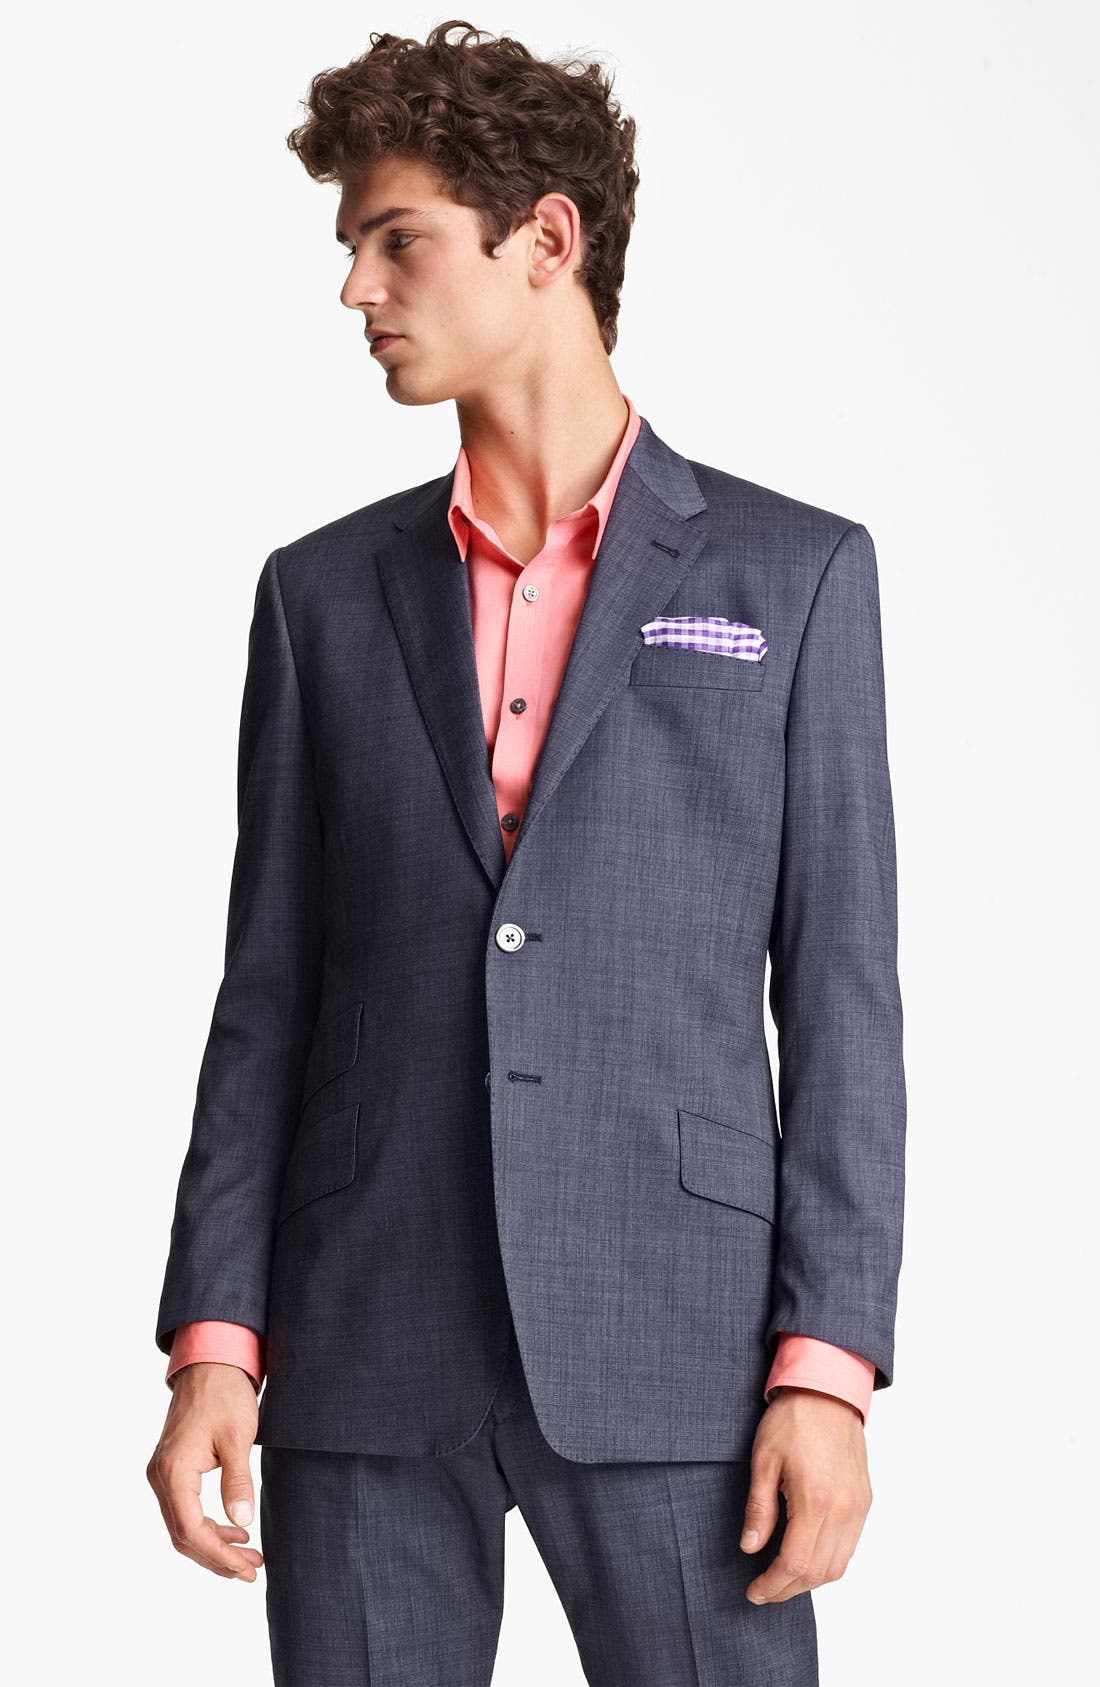 Alternate Image 1 Selected - Paul Smith London Slim Fit Wool & Cotton Suit